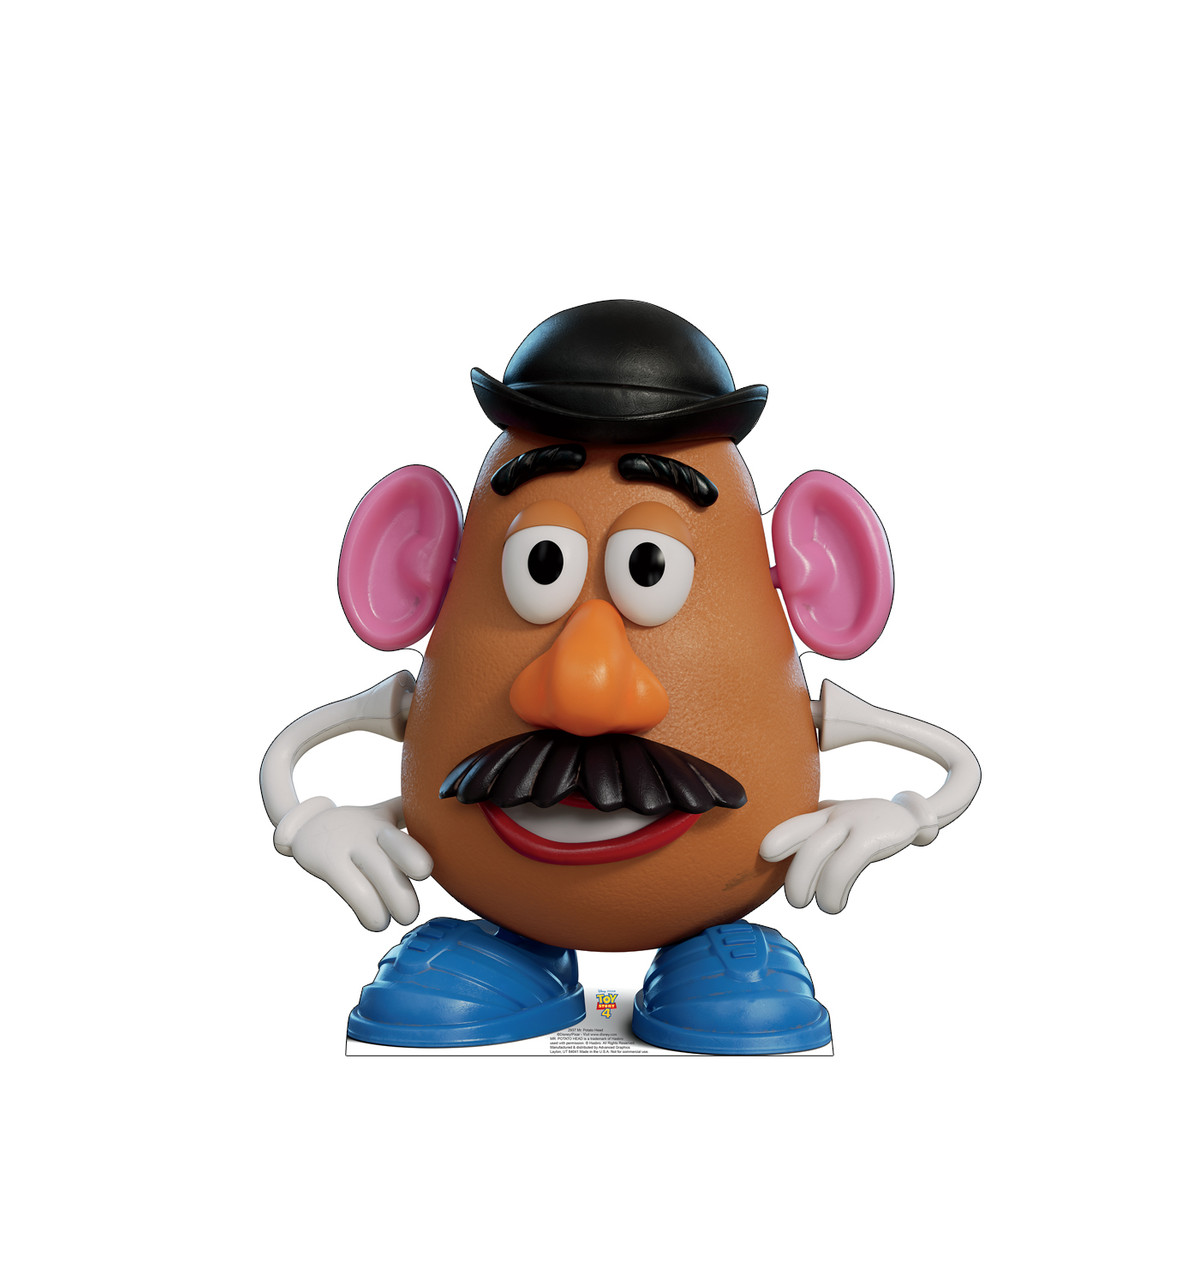 Mr Potato Head Life Size Toy Story 4 Cardboard Cutout